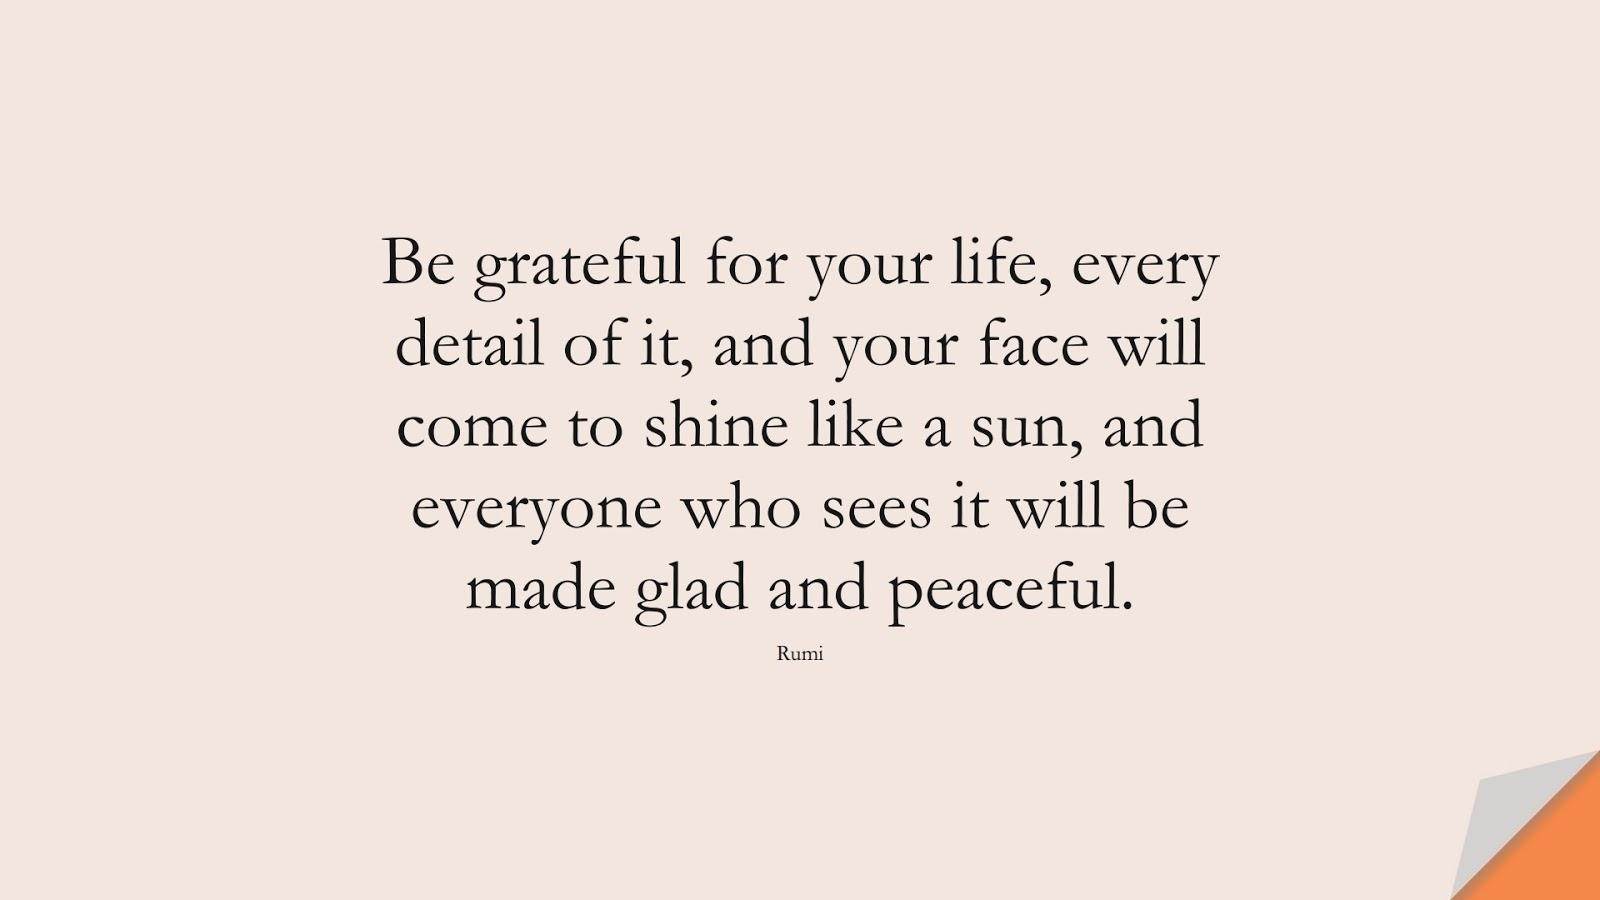 Be grateful for your life, every detail of it, and your face will come to shine like a sun, and everyone who sees it will be made glad and peaceful. (Rumi);  #RumiQuotes